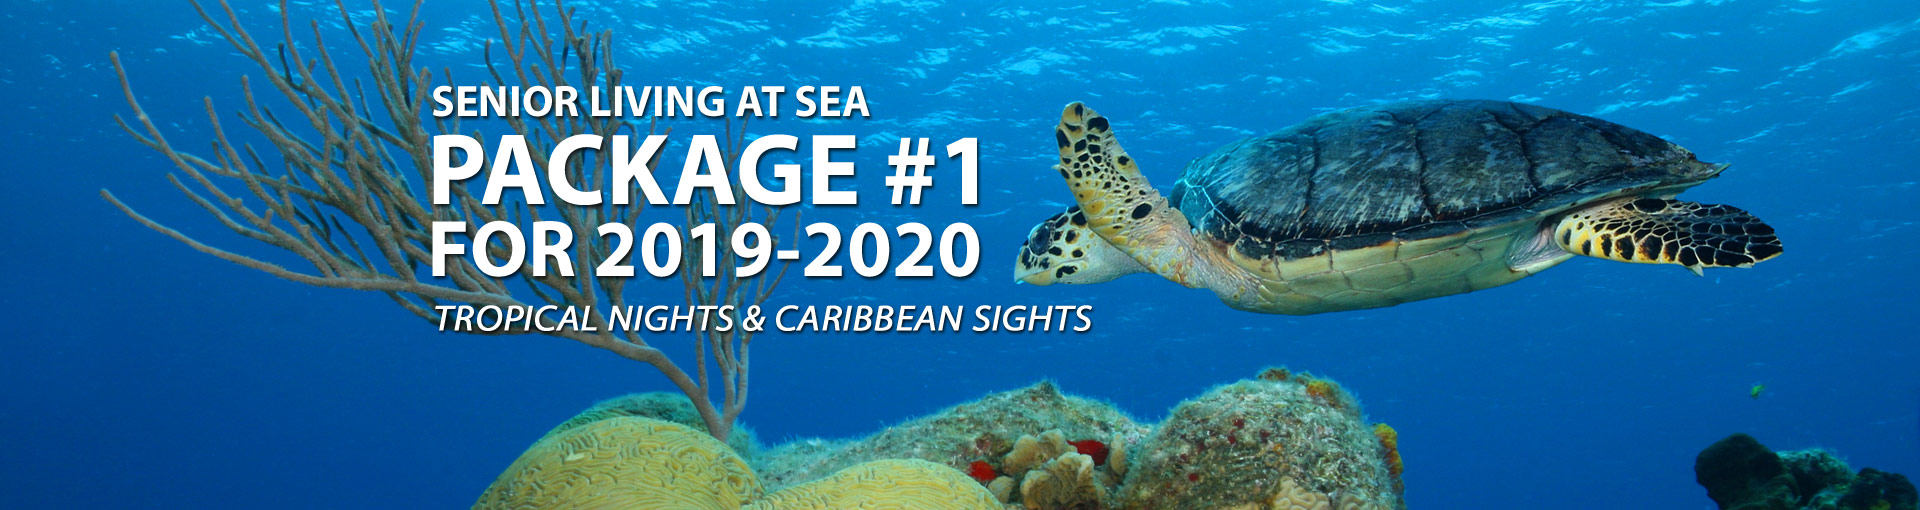 Senior Living at Sea - Package 1 for 2019-2020